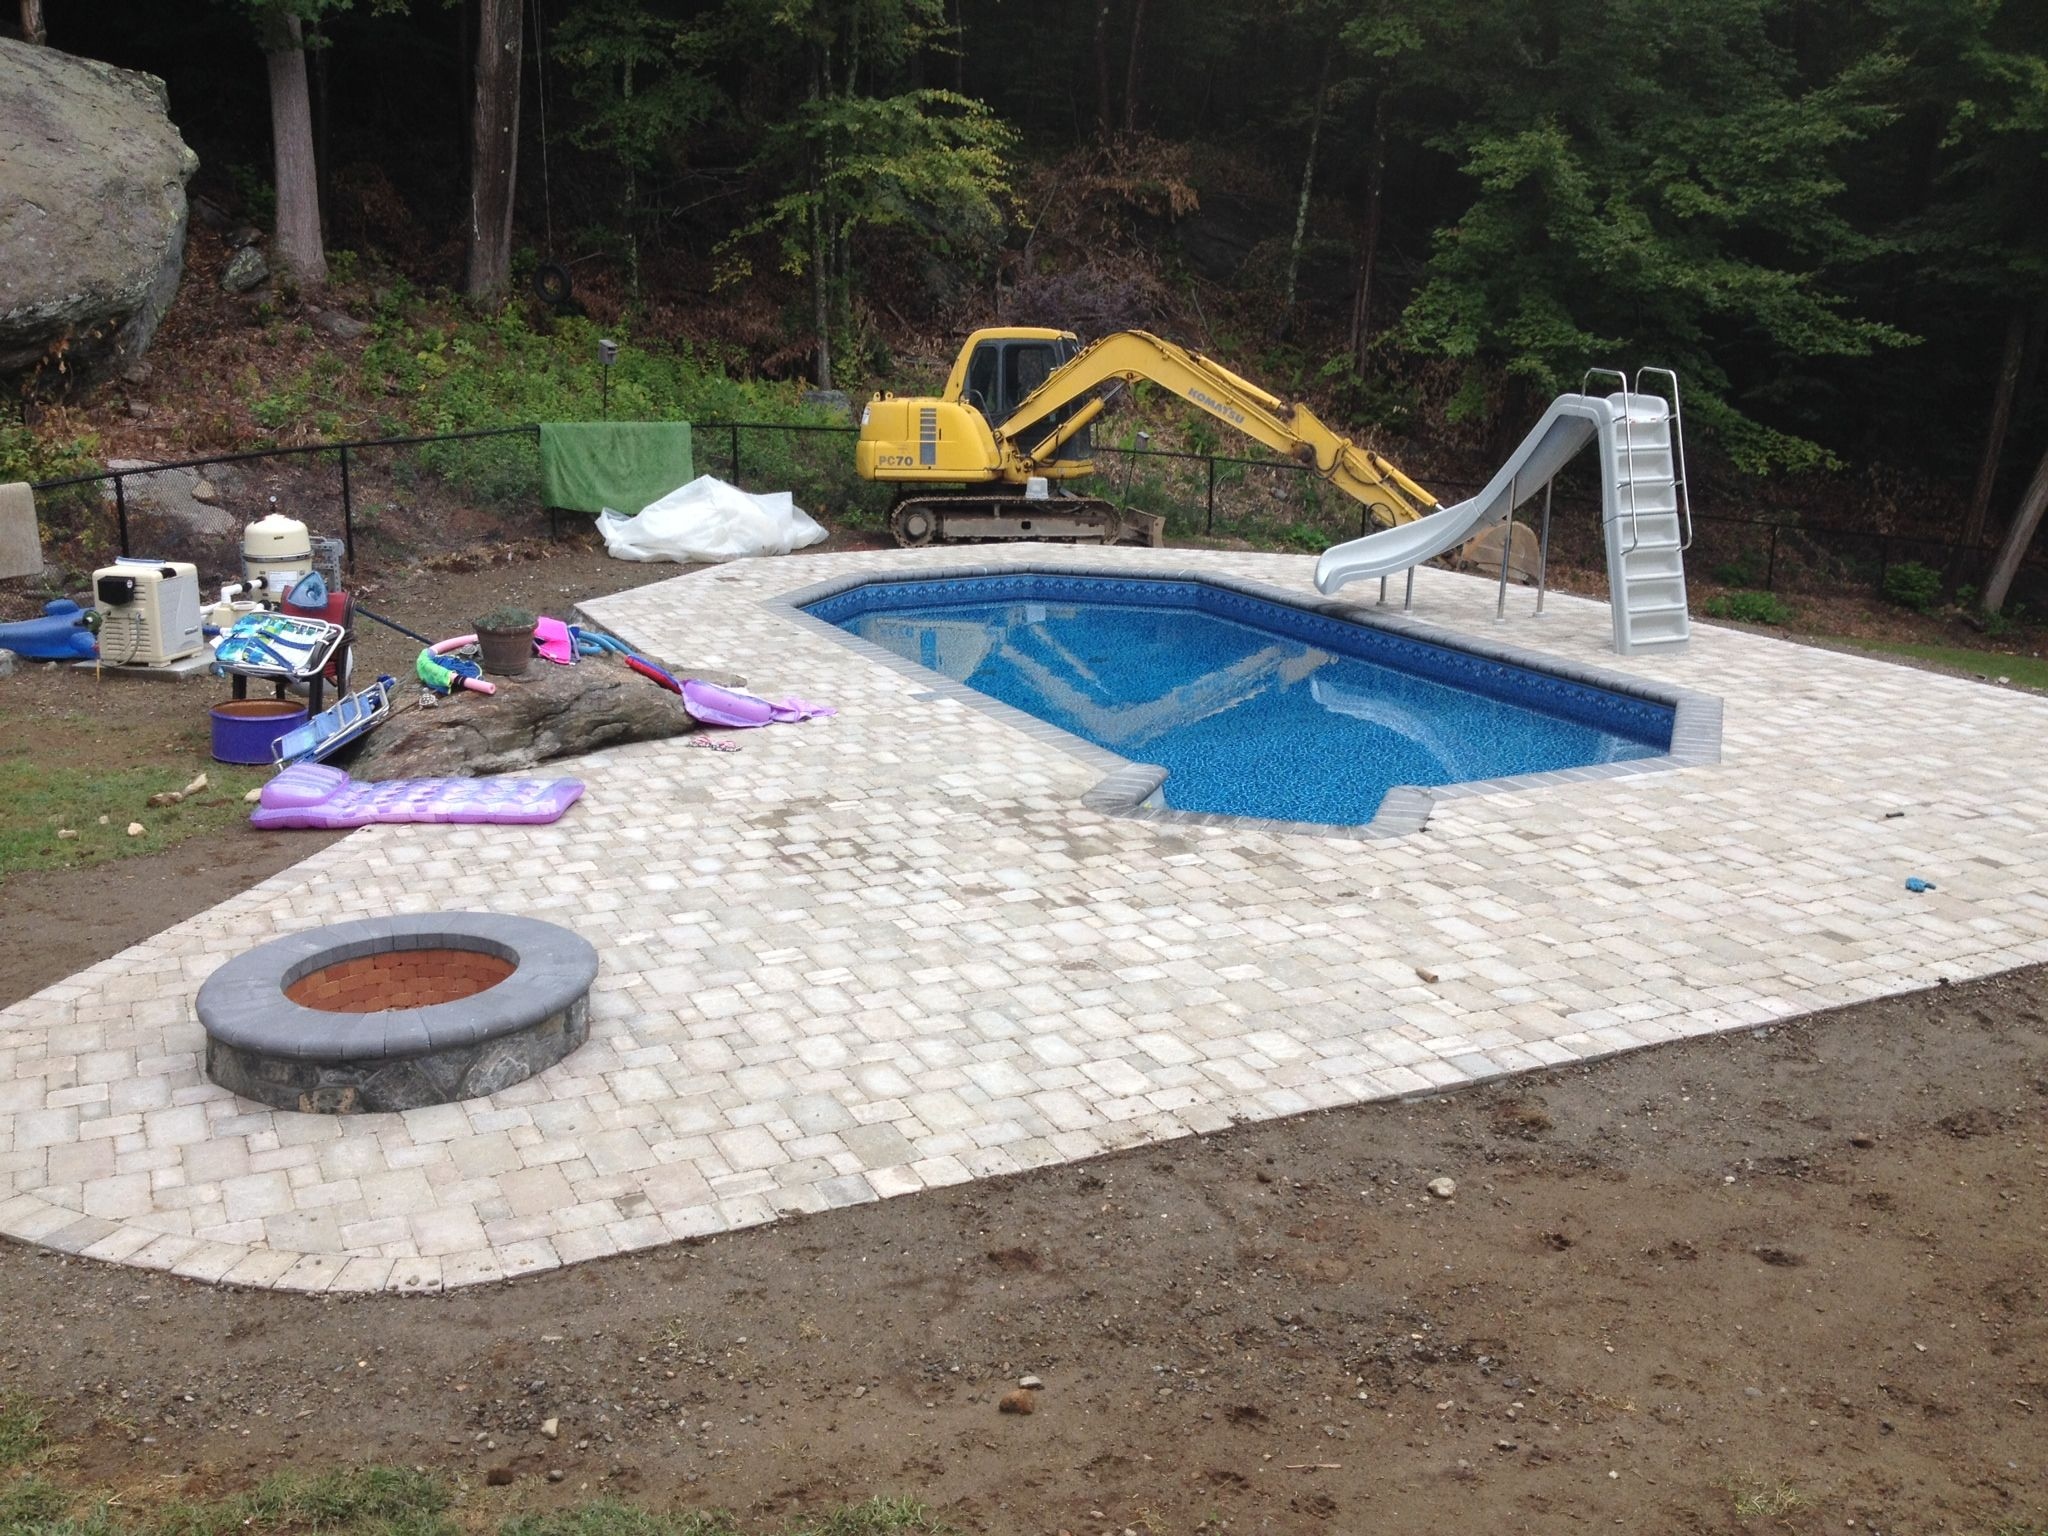 New In Ground Pool W/paver Patio, Bullnose Coping, Fire Pit, Slide And More.